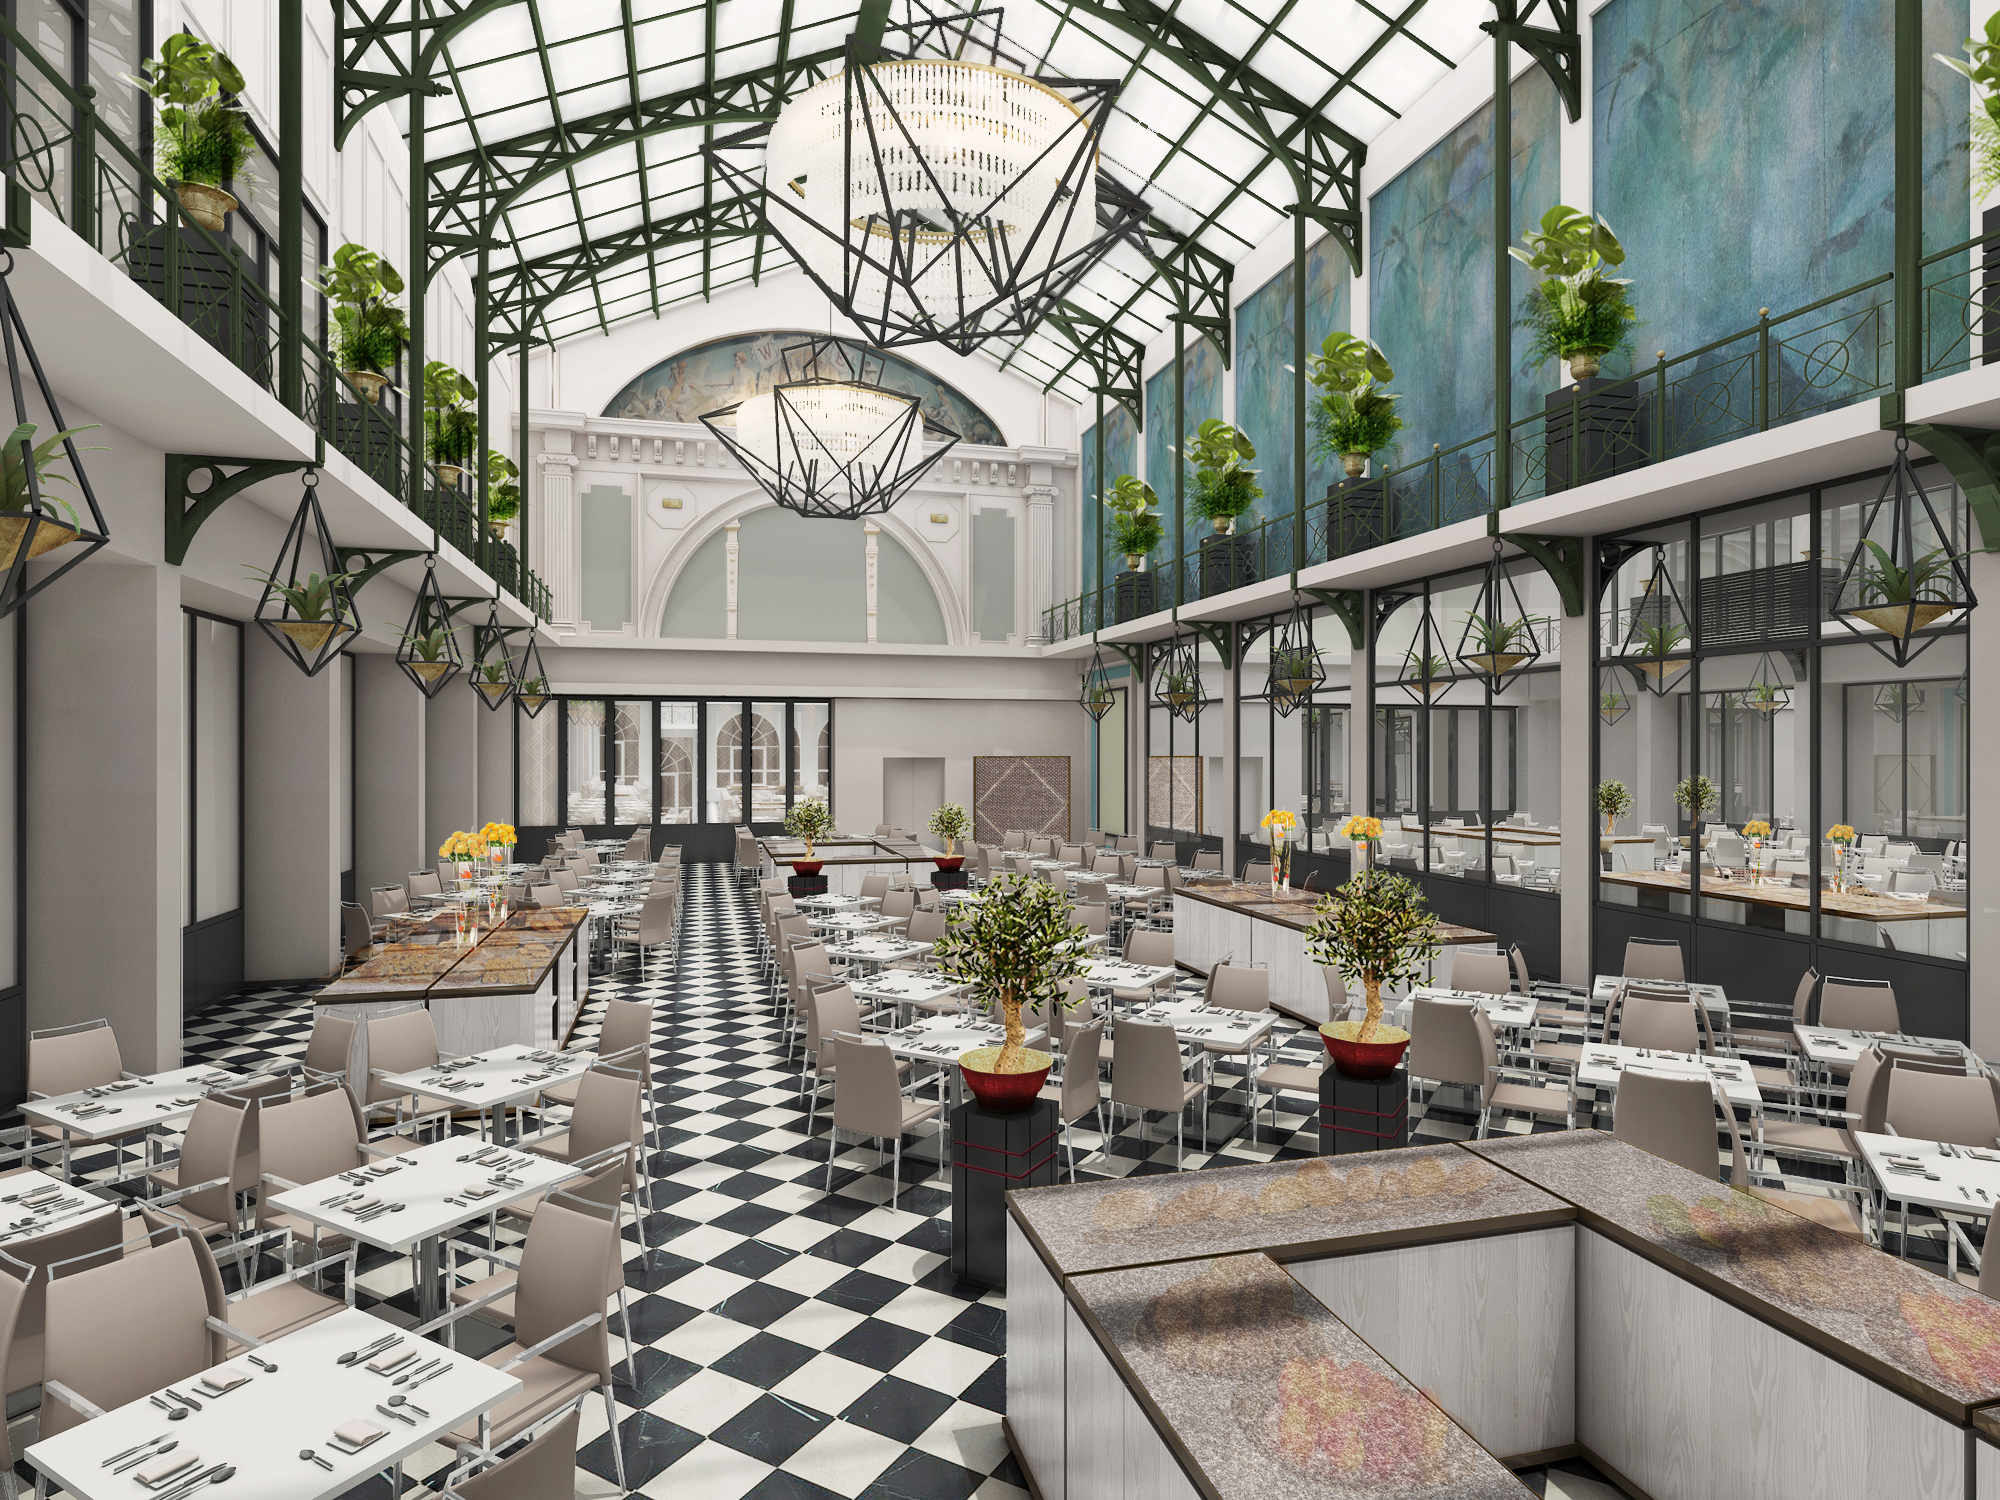 Nh heropent drie iconische hotels in amsterdam for Nh hotel amsterdam